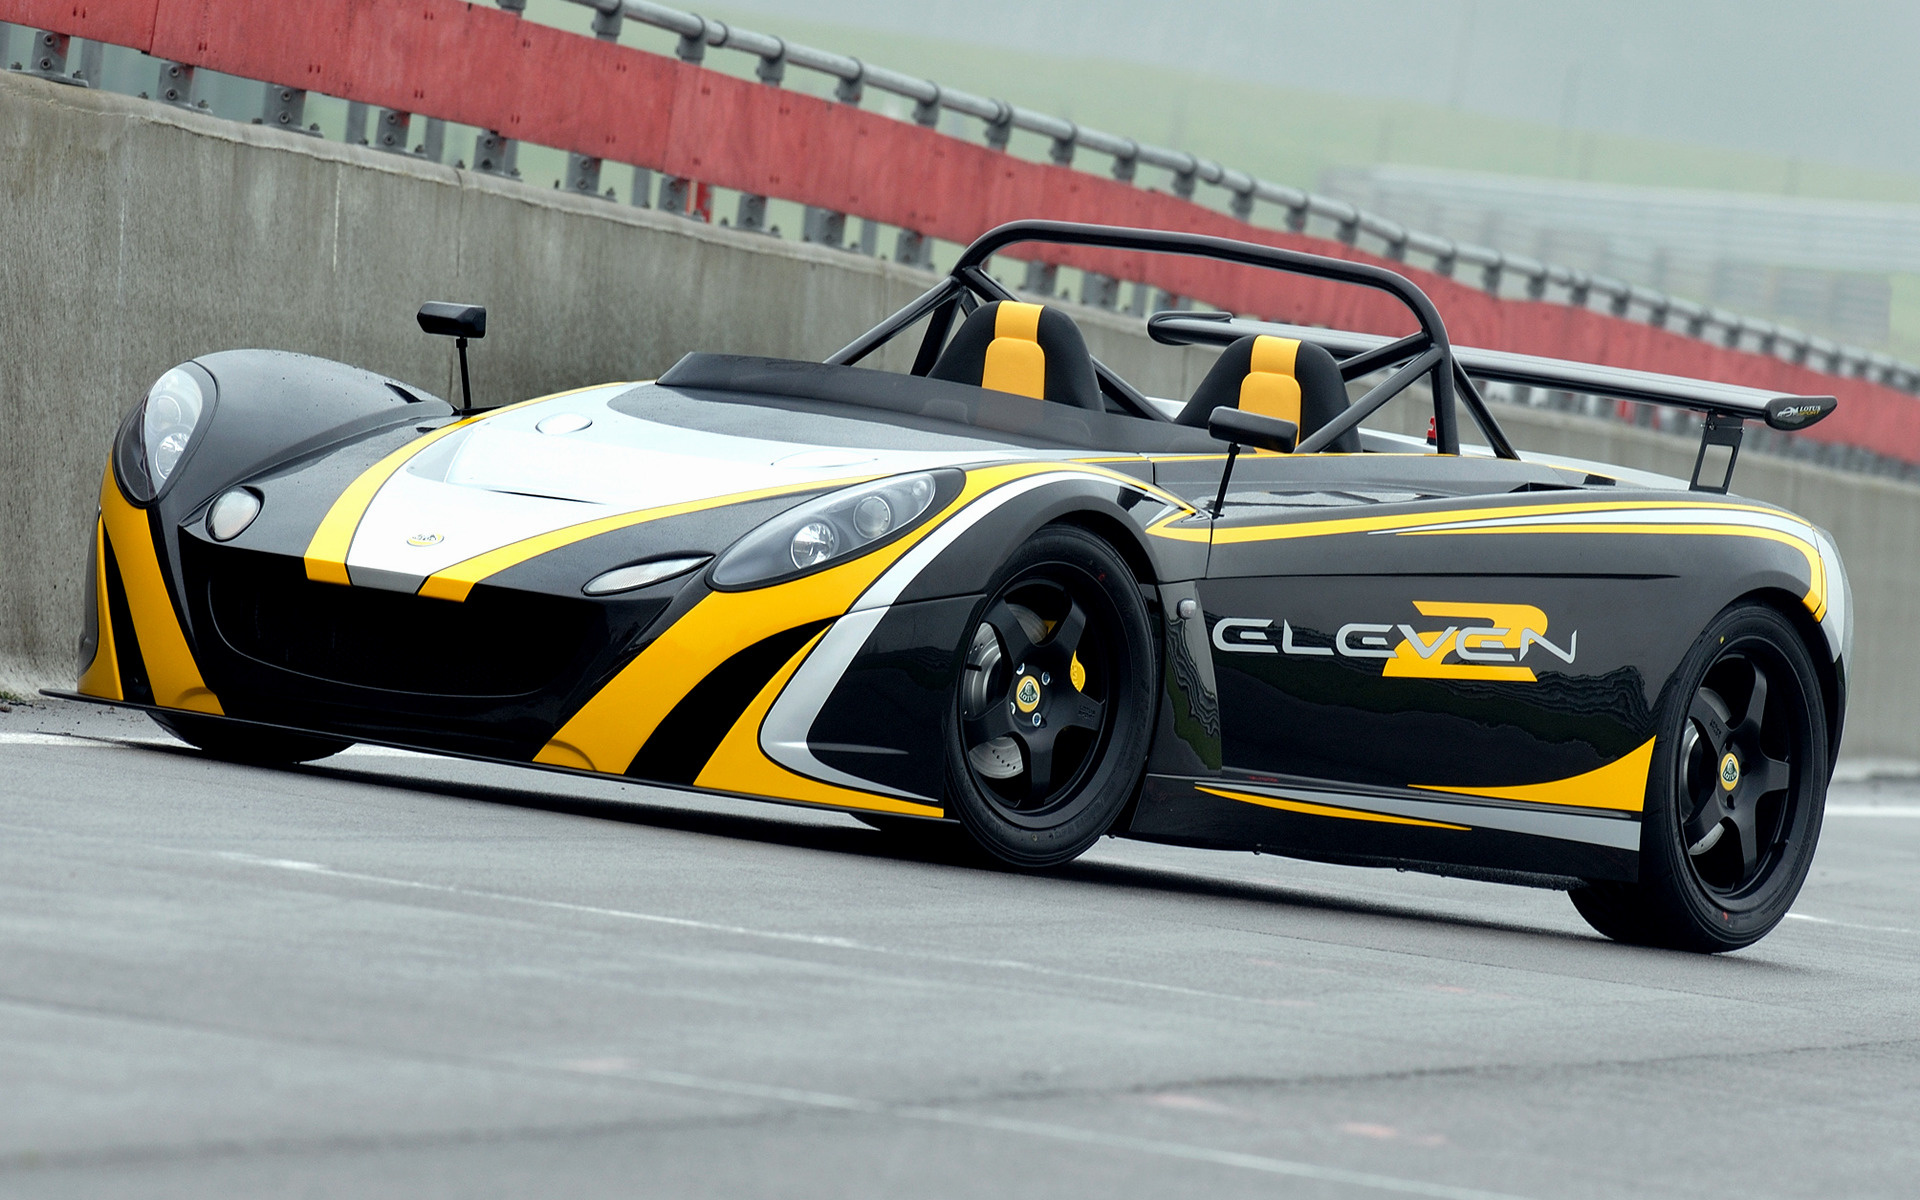 Lotus 2-Eleven (2007) Wallpapers and HD Images - Car Pixel